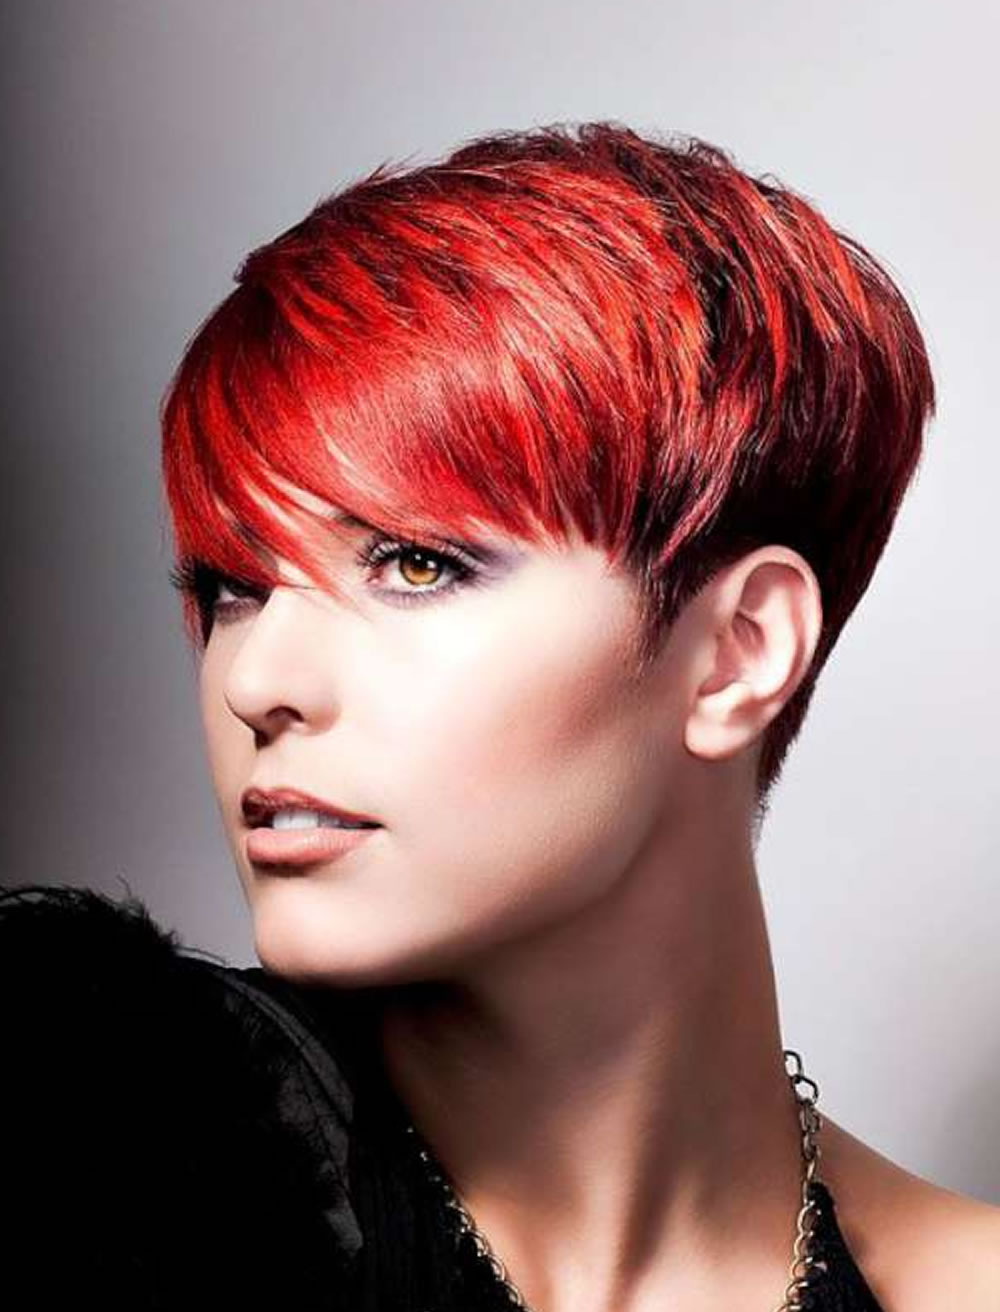 Cool Red Short Hair Cut For 2018 2019 – Hairstyles Regarding Red Short Hairstyles (View 5 of 25)